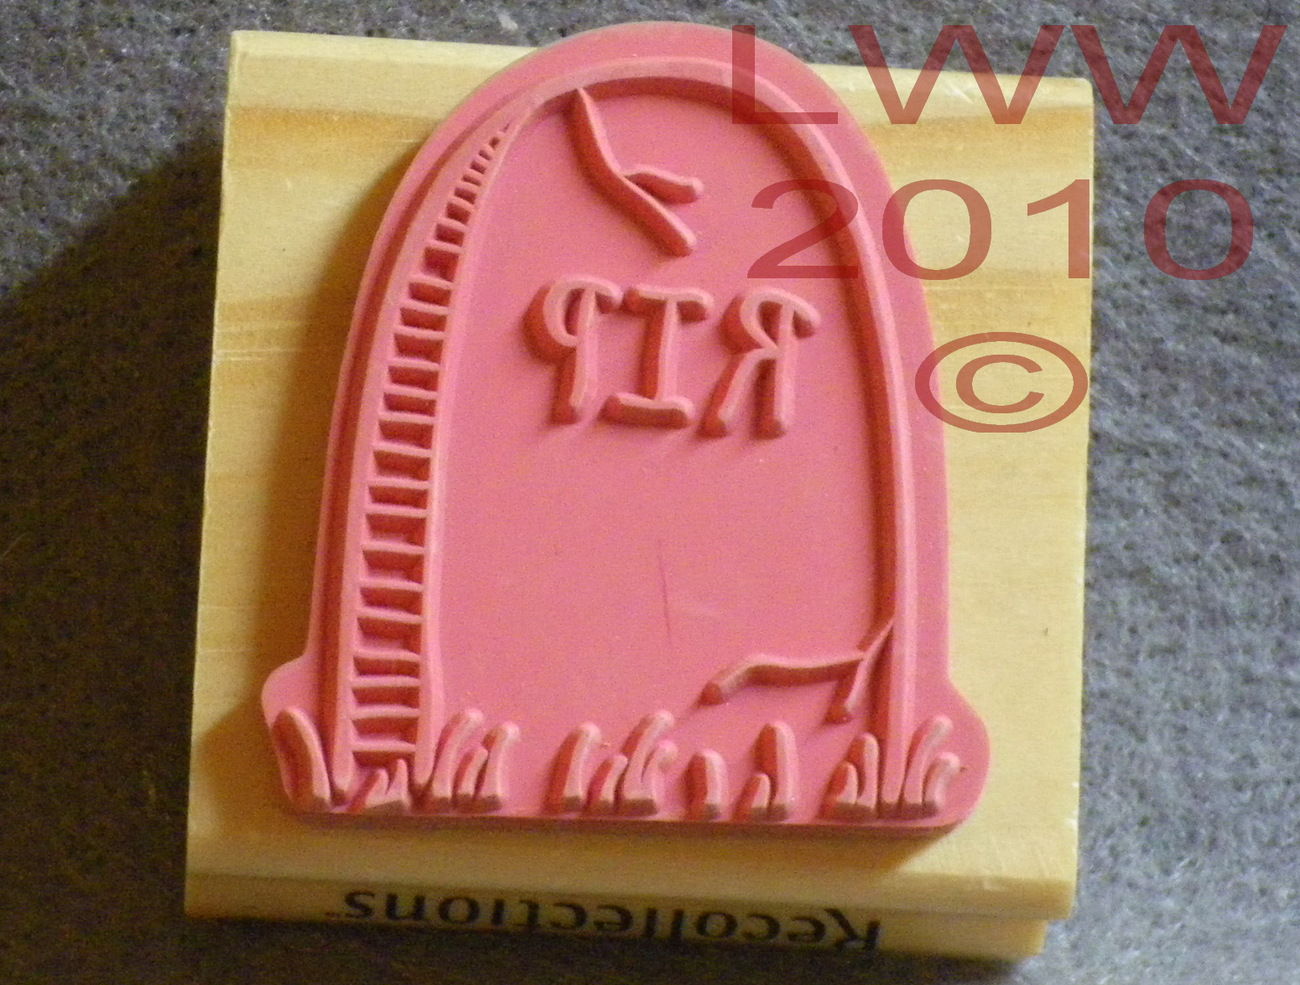 Wood-mounted RIP Halloween Tombstone Rubber Stamp